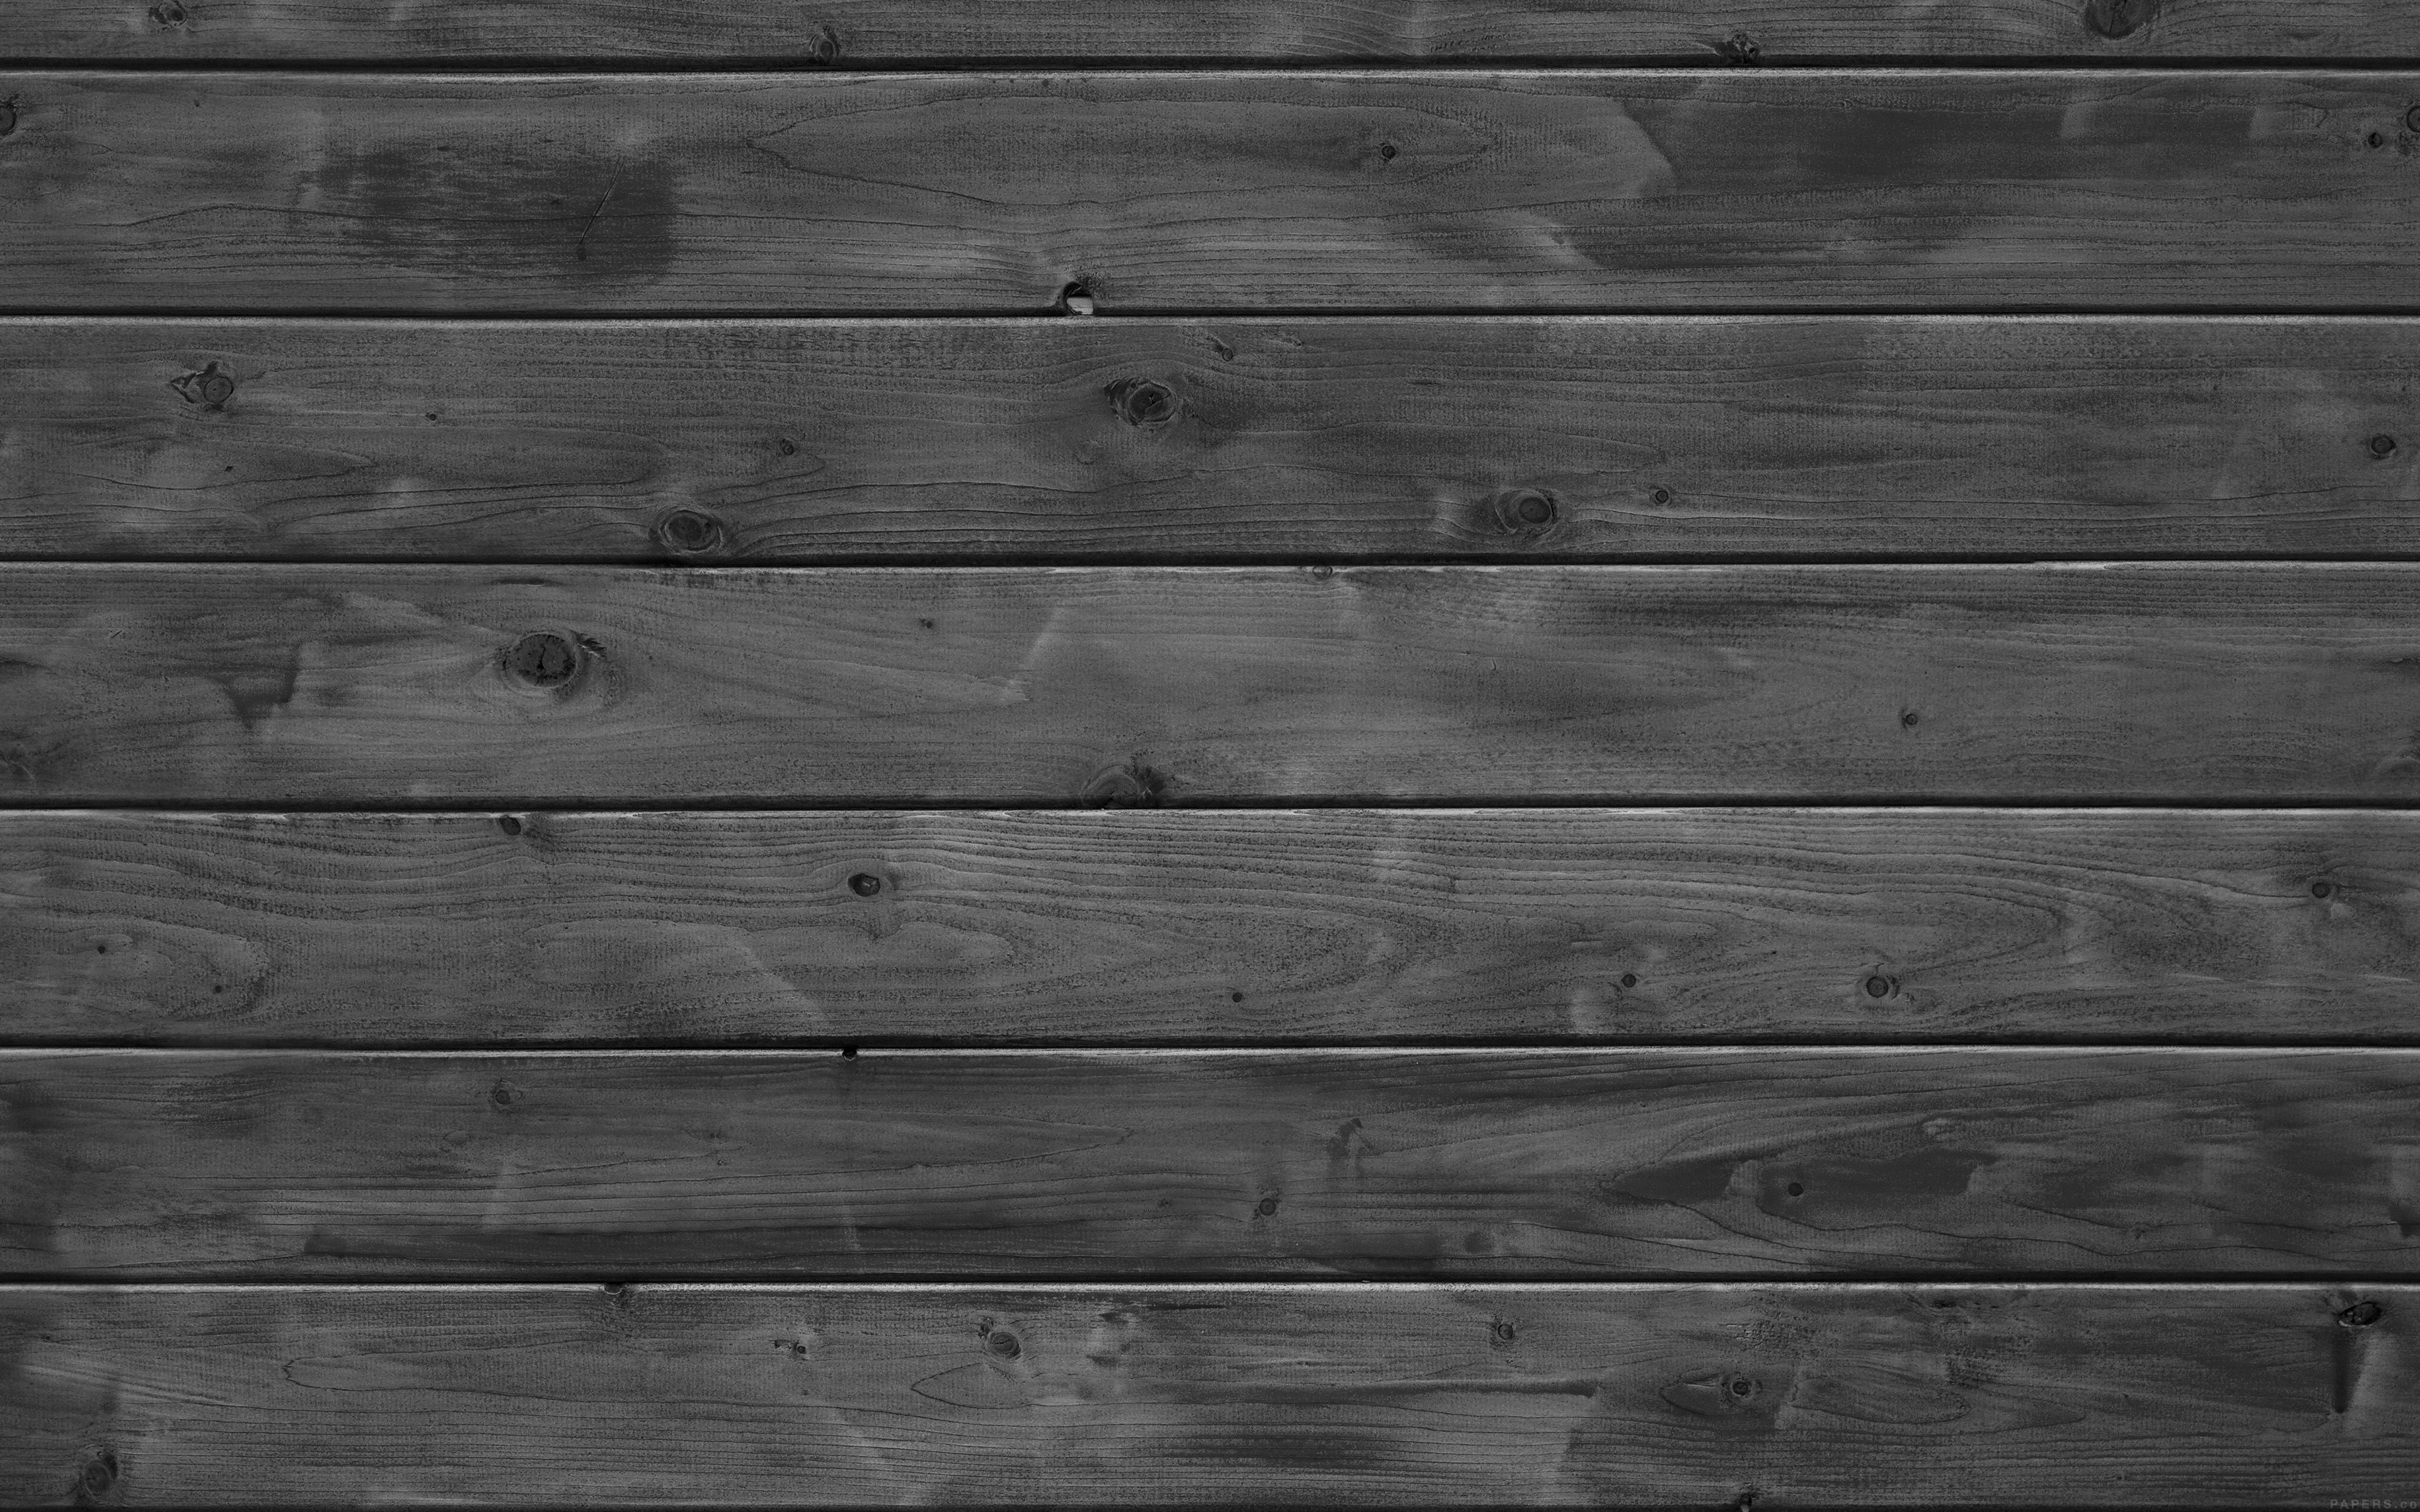 Wood 4k Wallpapers Top Free Wood 4k Backgrounds Wallpaperaccess